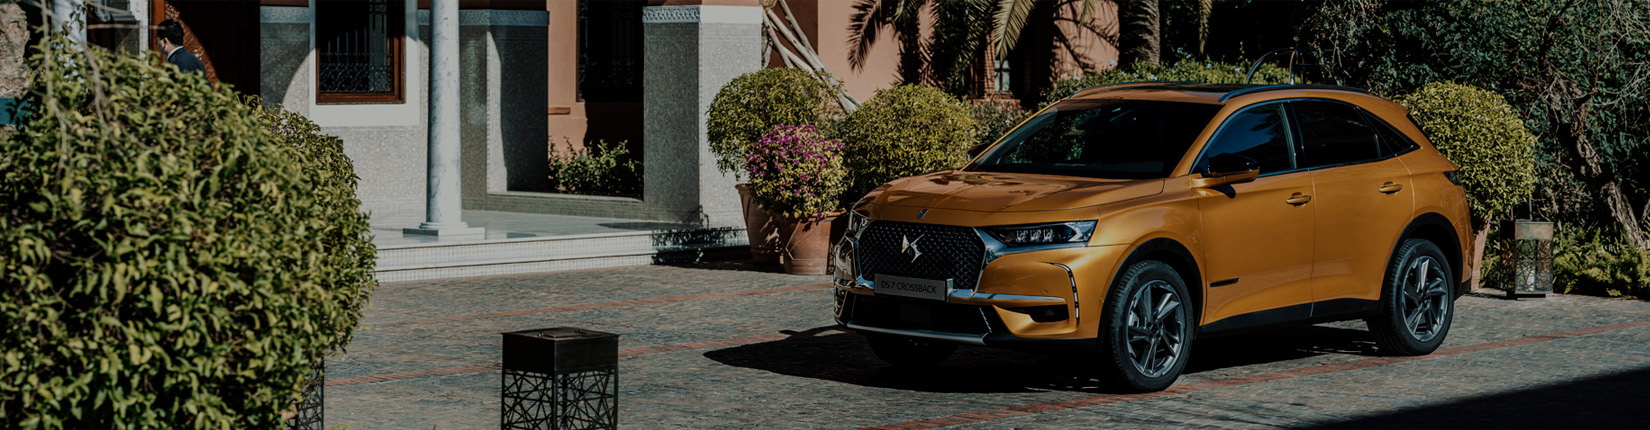 DS 7 CROSSBACK Side image - DS Automobiles UK